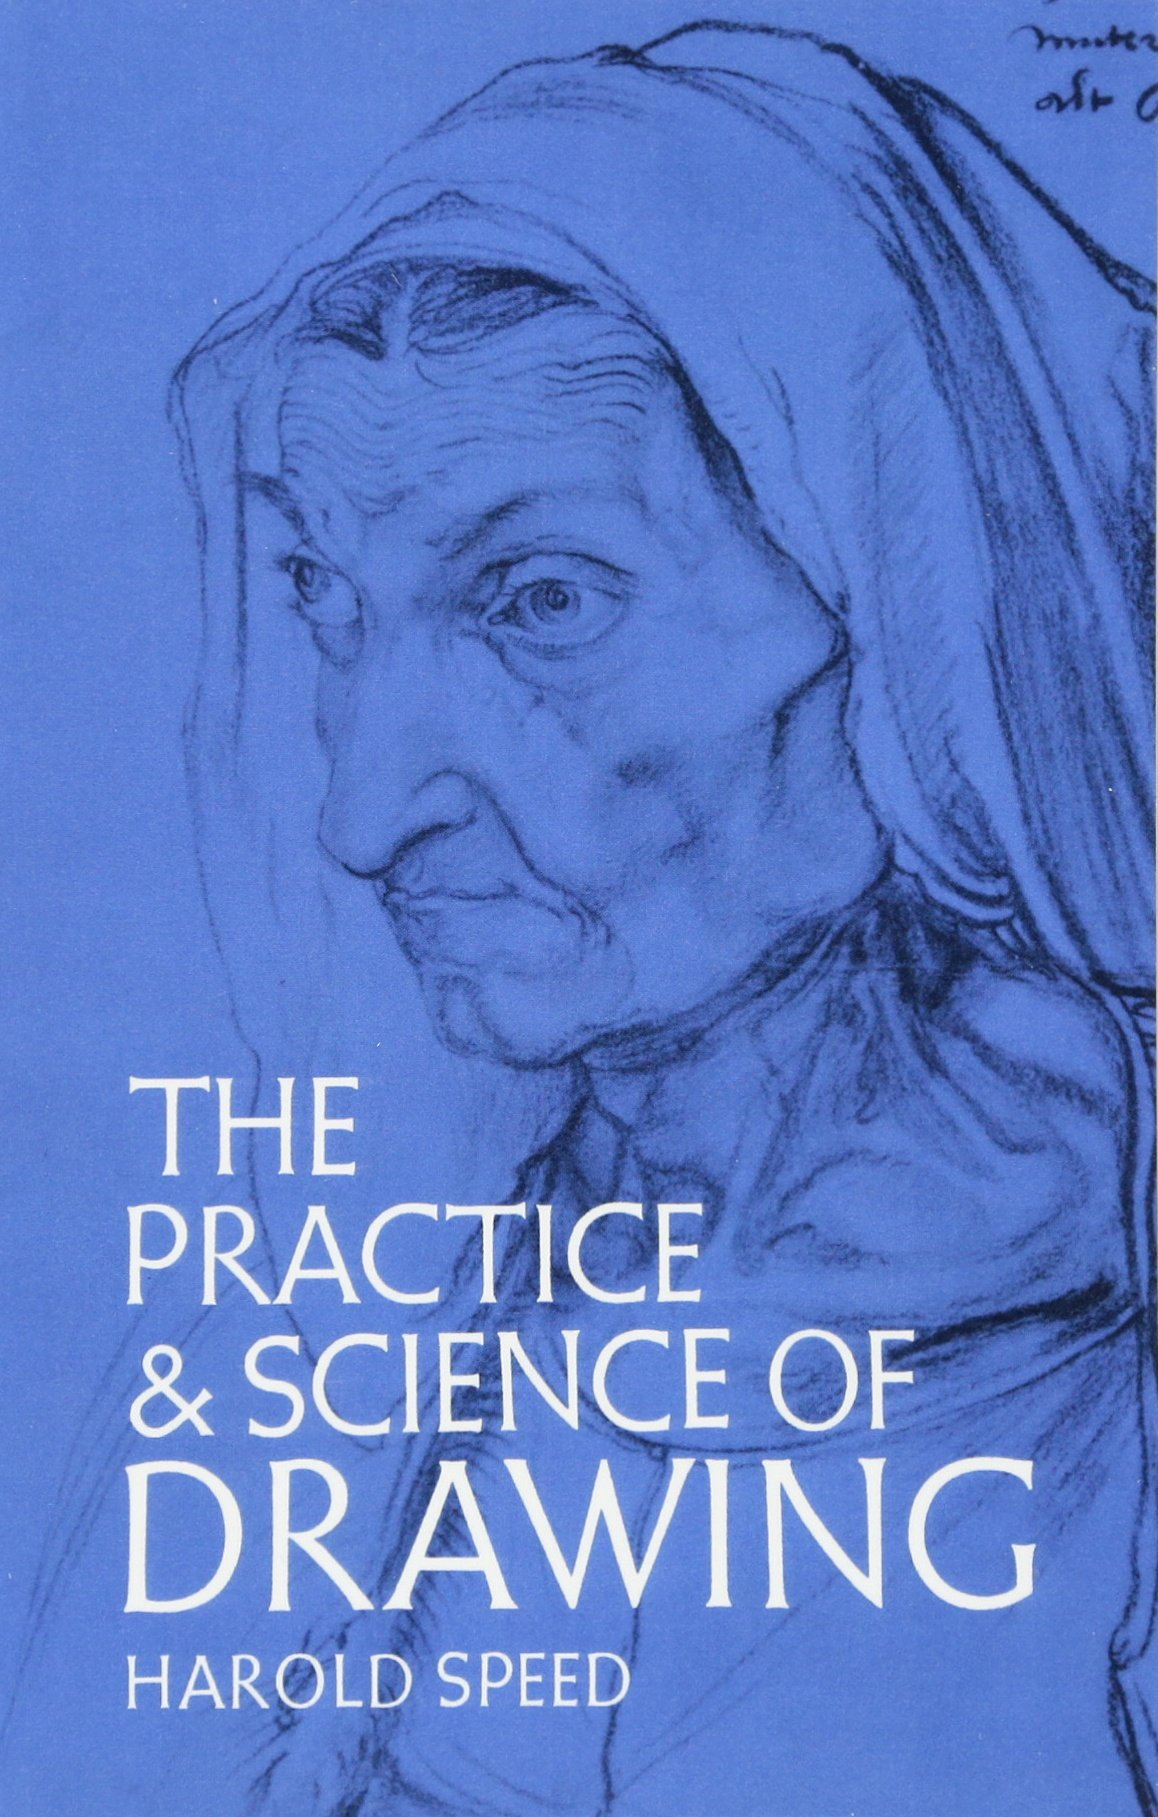 The practice and science of drawing dover art instruction harold speed 9780486228709 amazon com books